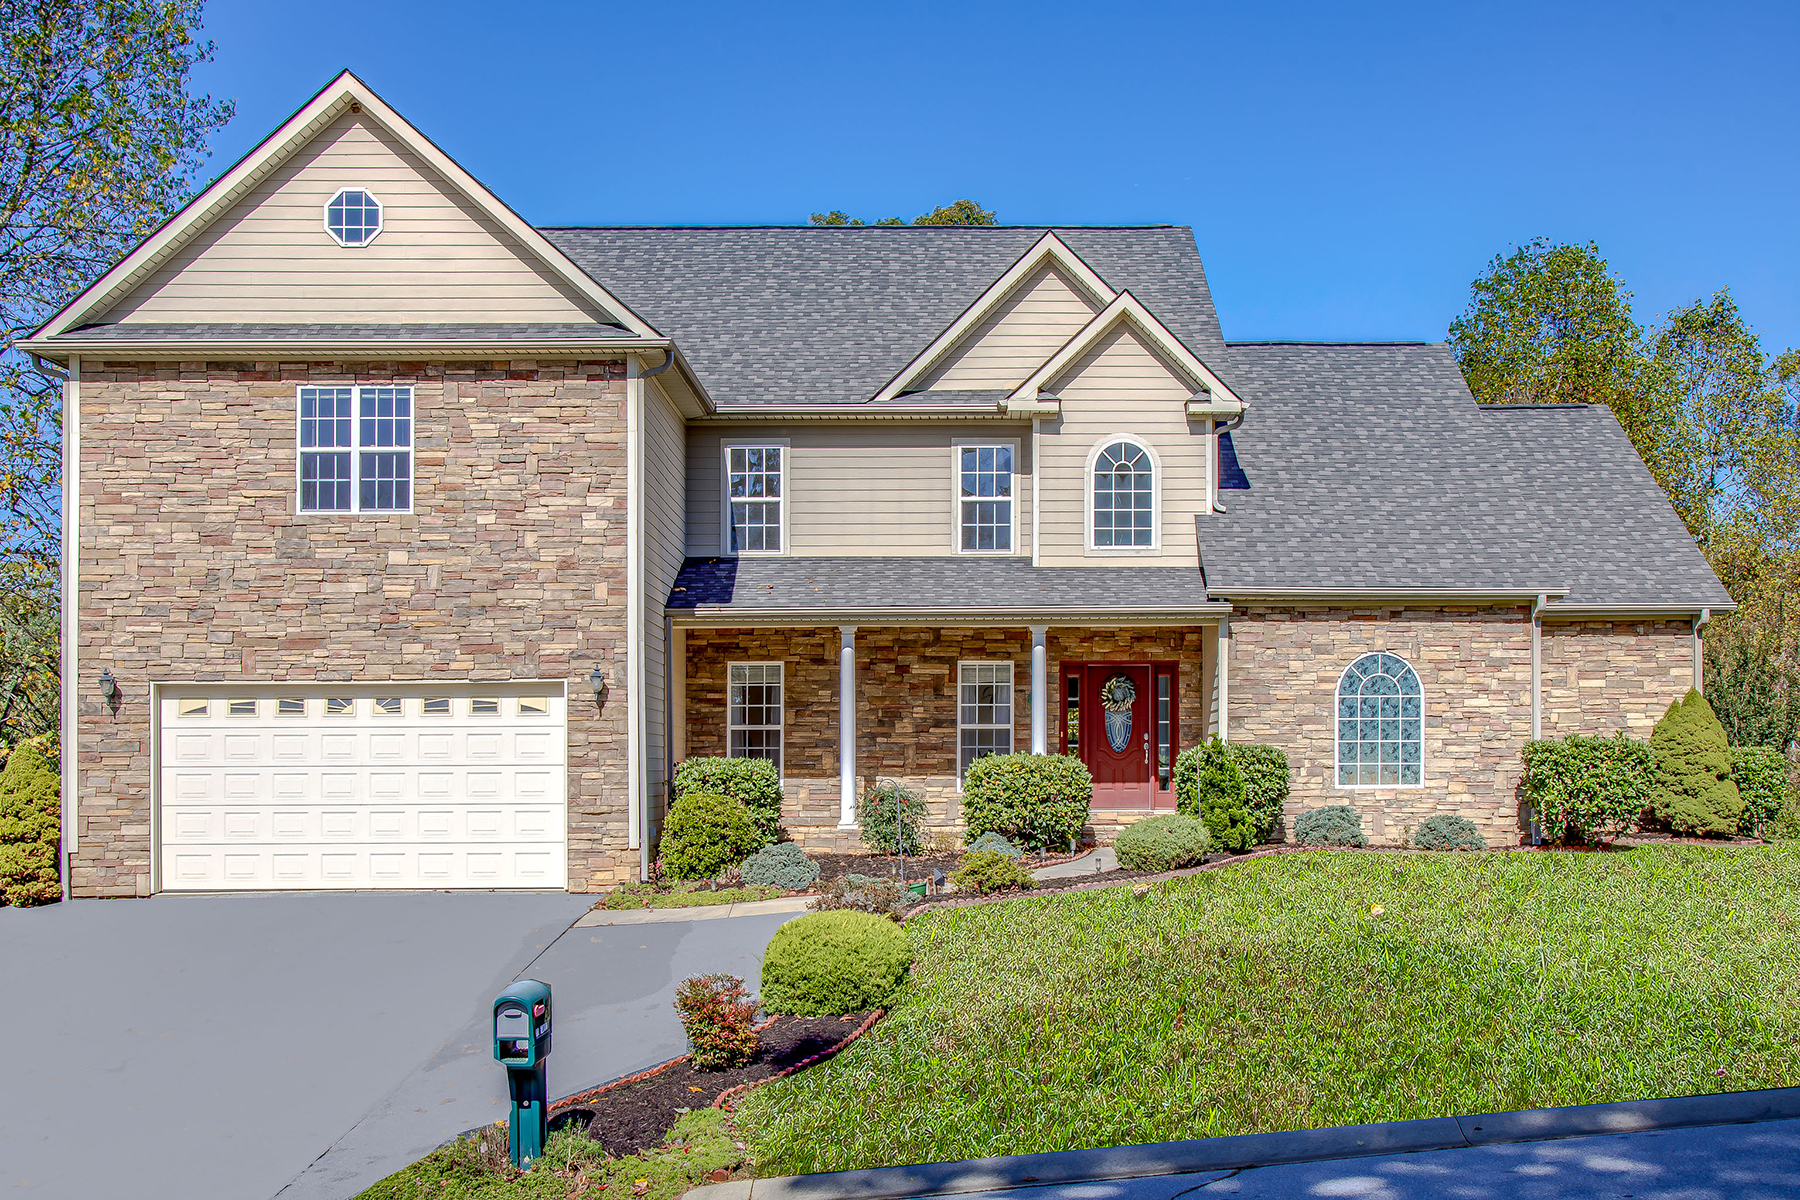 Single Family Homes for Active at 34 Drakes Meadow Ln Arden, North Carolina 28704 United States